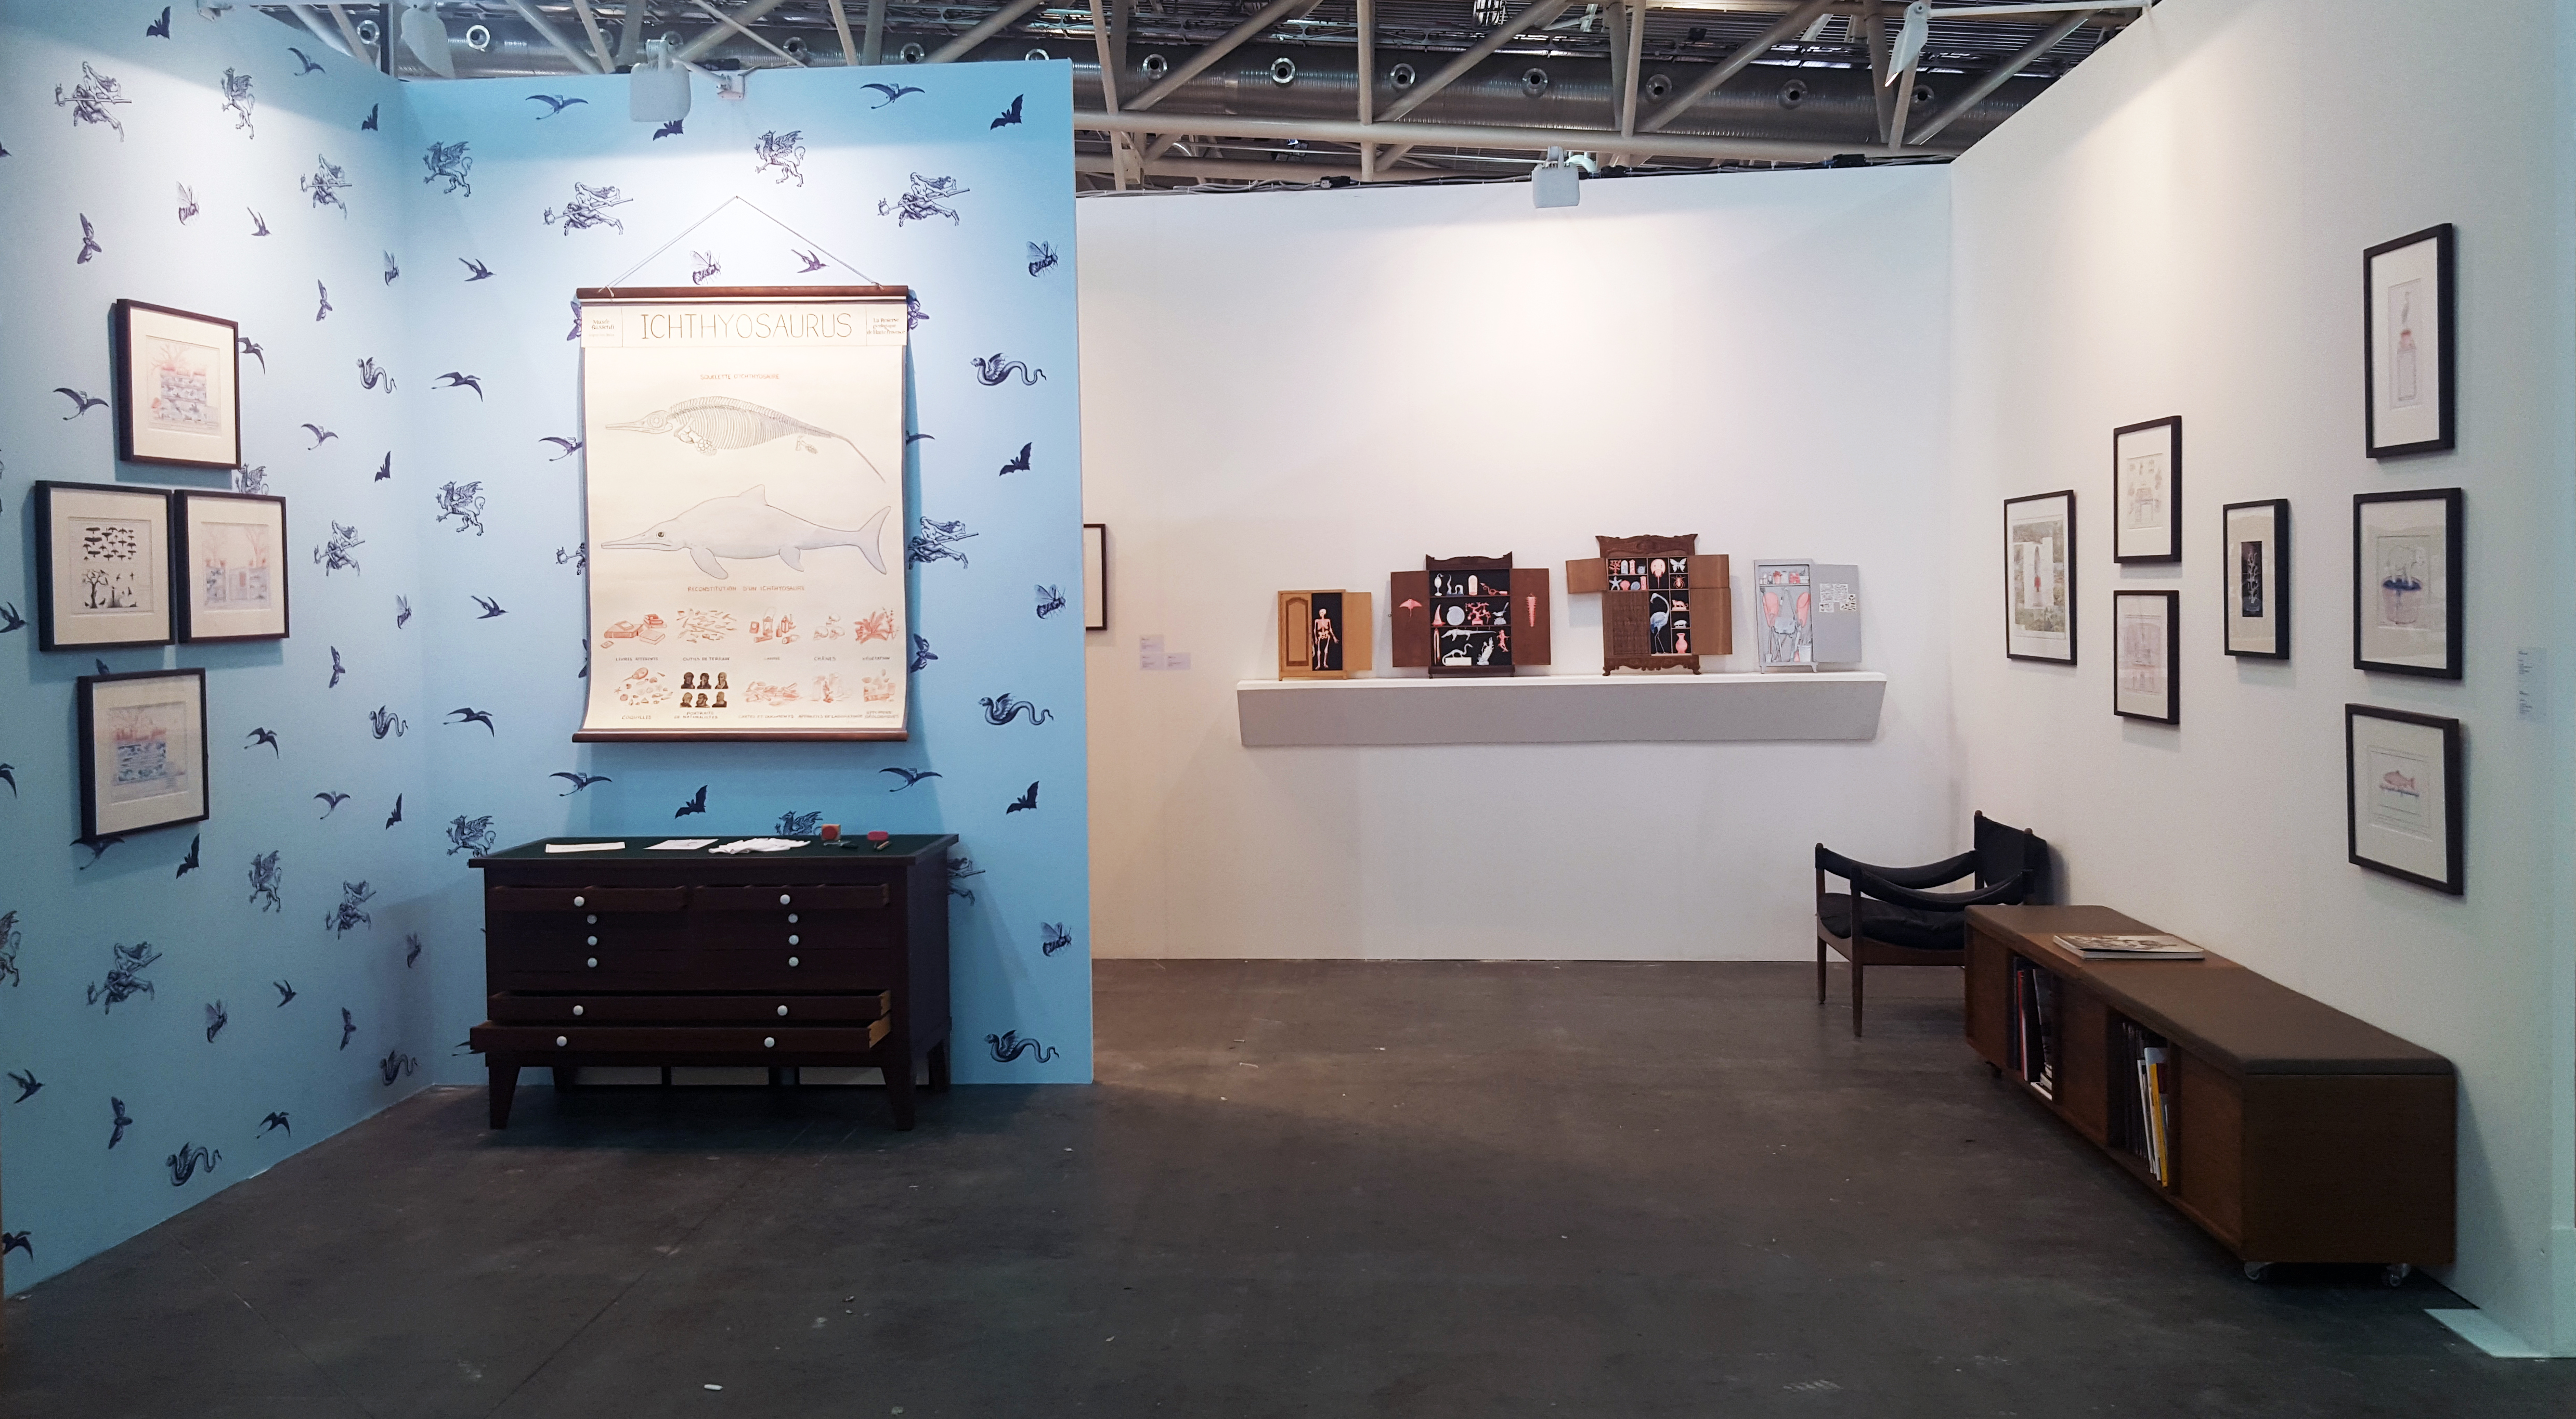 mark_dion_artissima_2017_in_situ_e.jpg